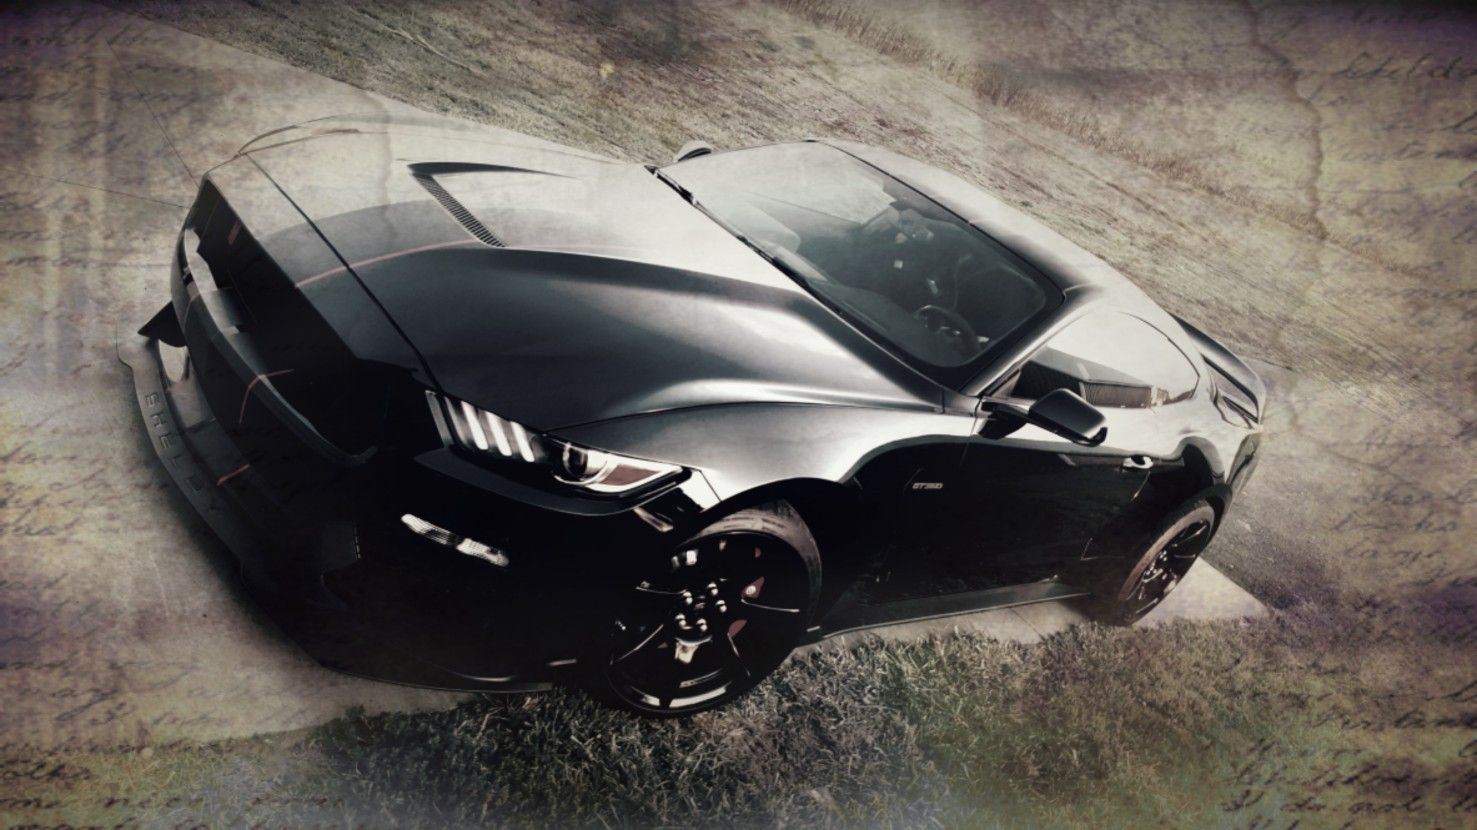 2016 Ford Mustang Shleby GT-350R. This is the baddest car ever ...